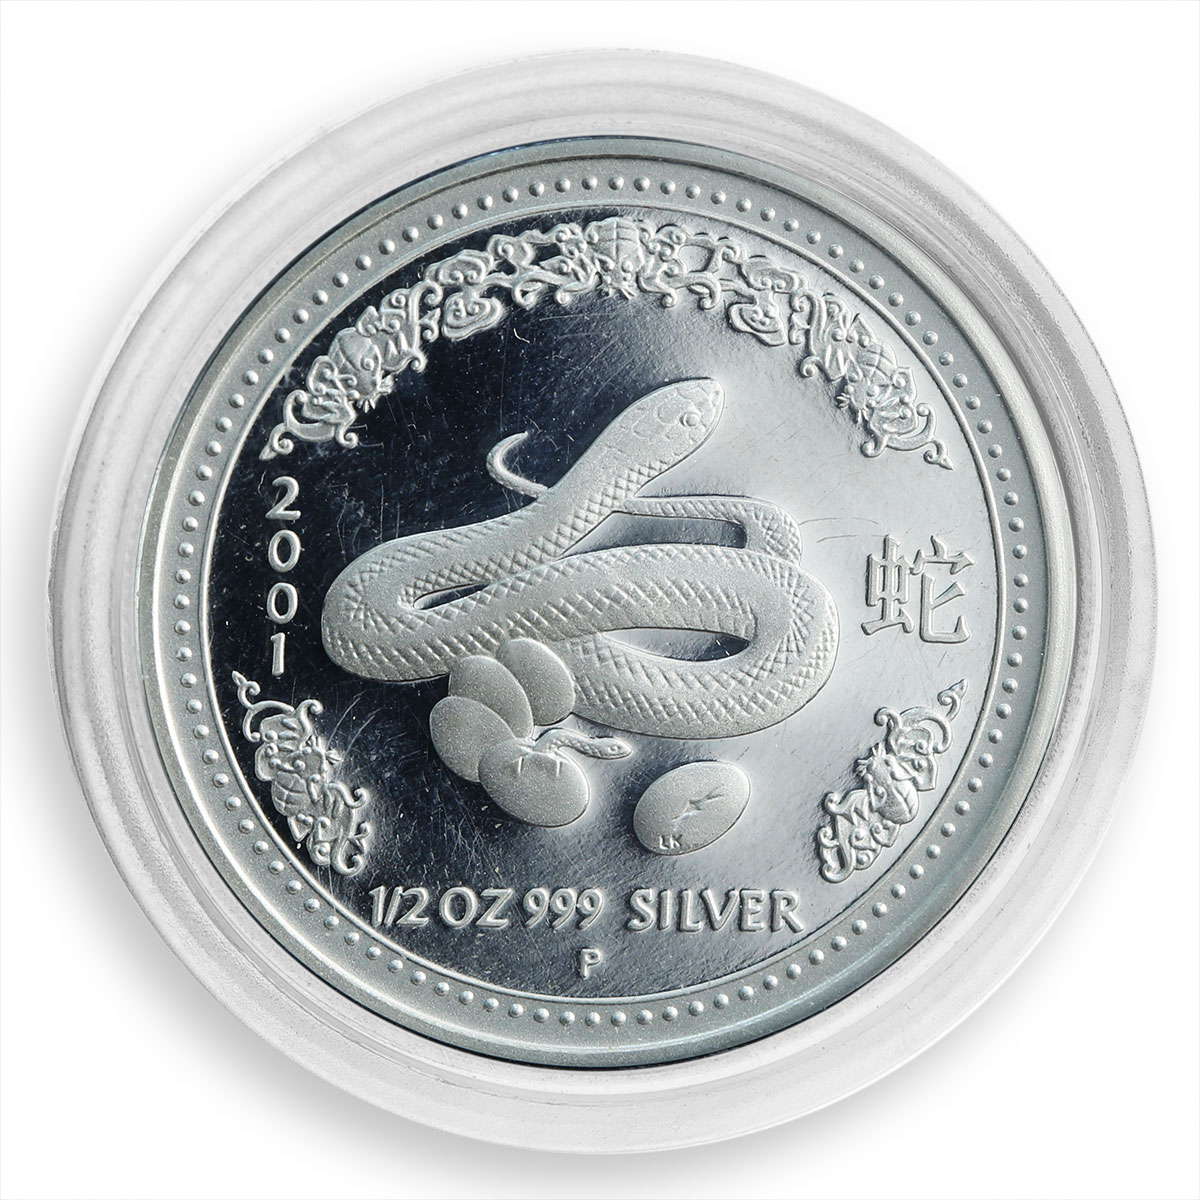 Australia, 50 cents, Lunar YEAR OF THE SNAKE Series I Silver proof 1/2 oz, 2001